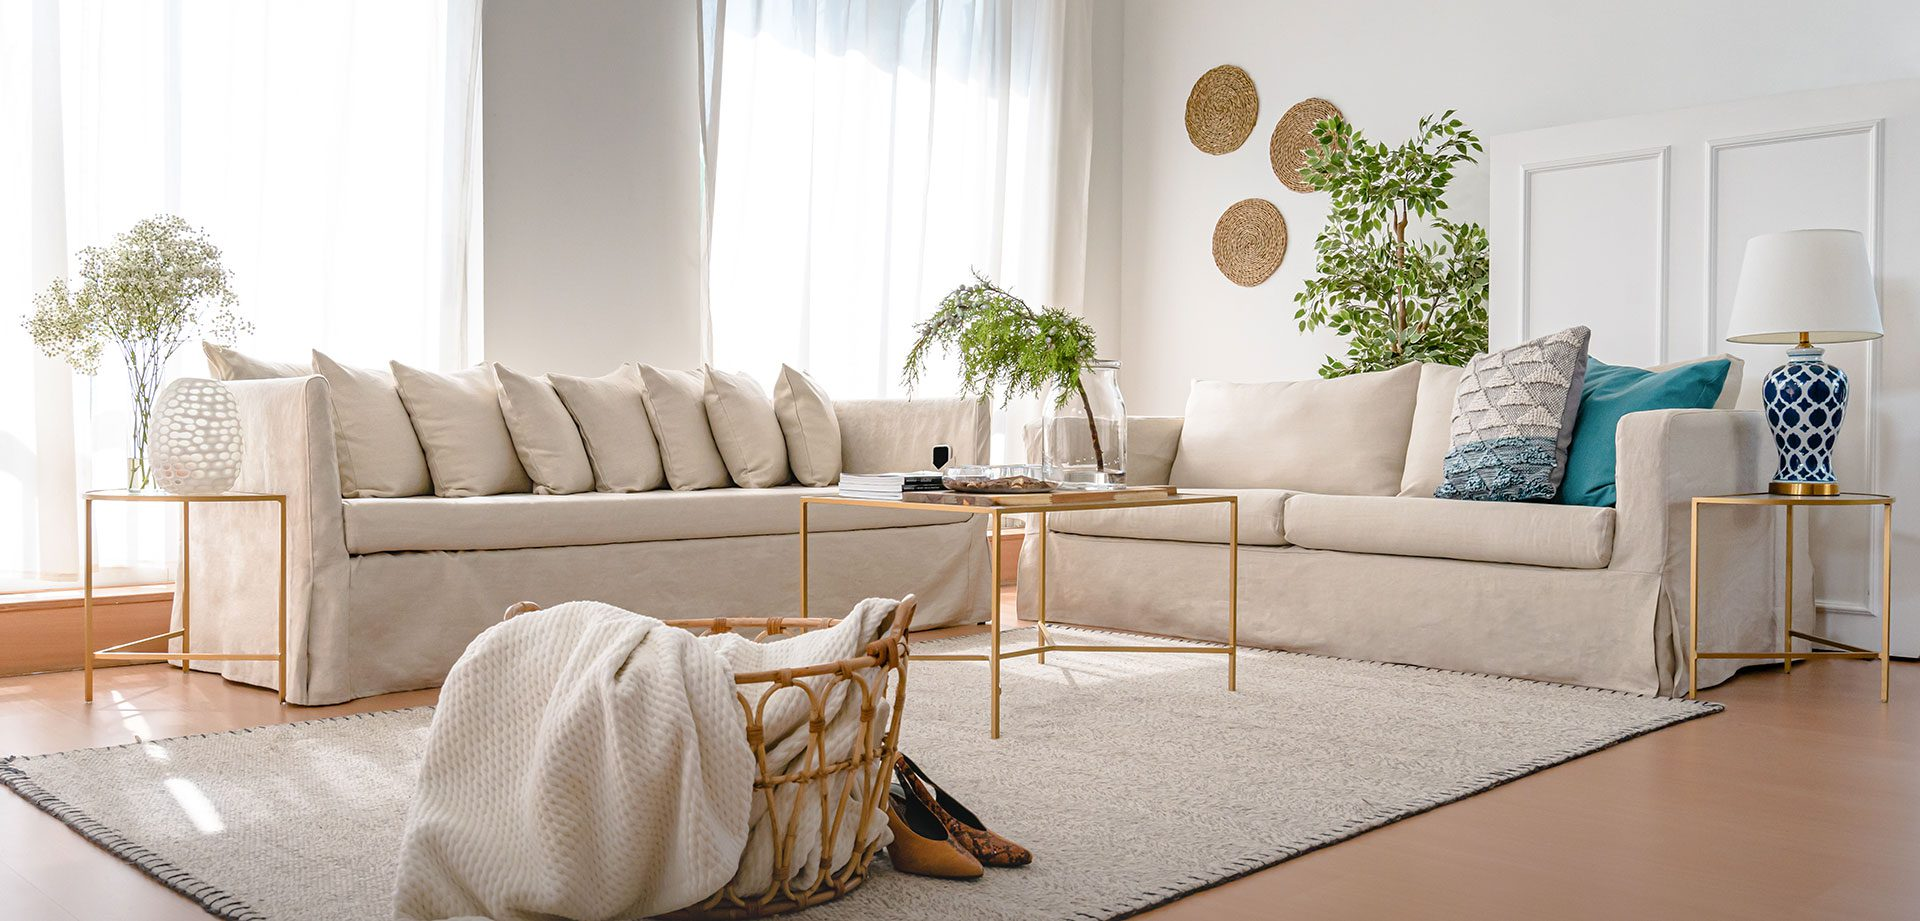 Best Trend Living Room Ideas 2020 This Year Details @house2homegoods.net